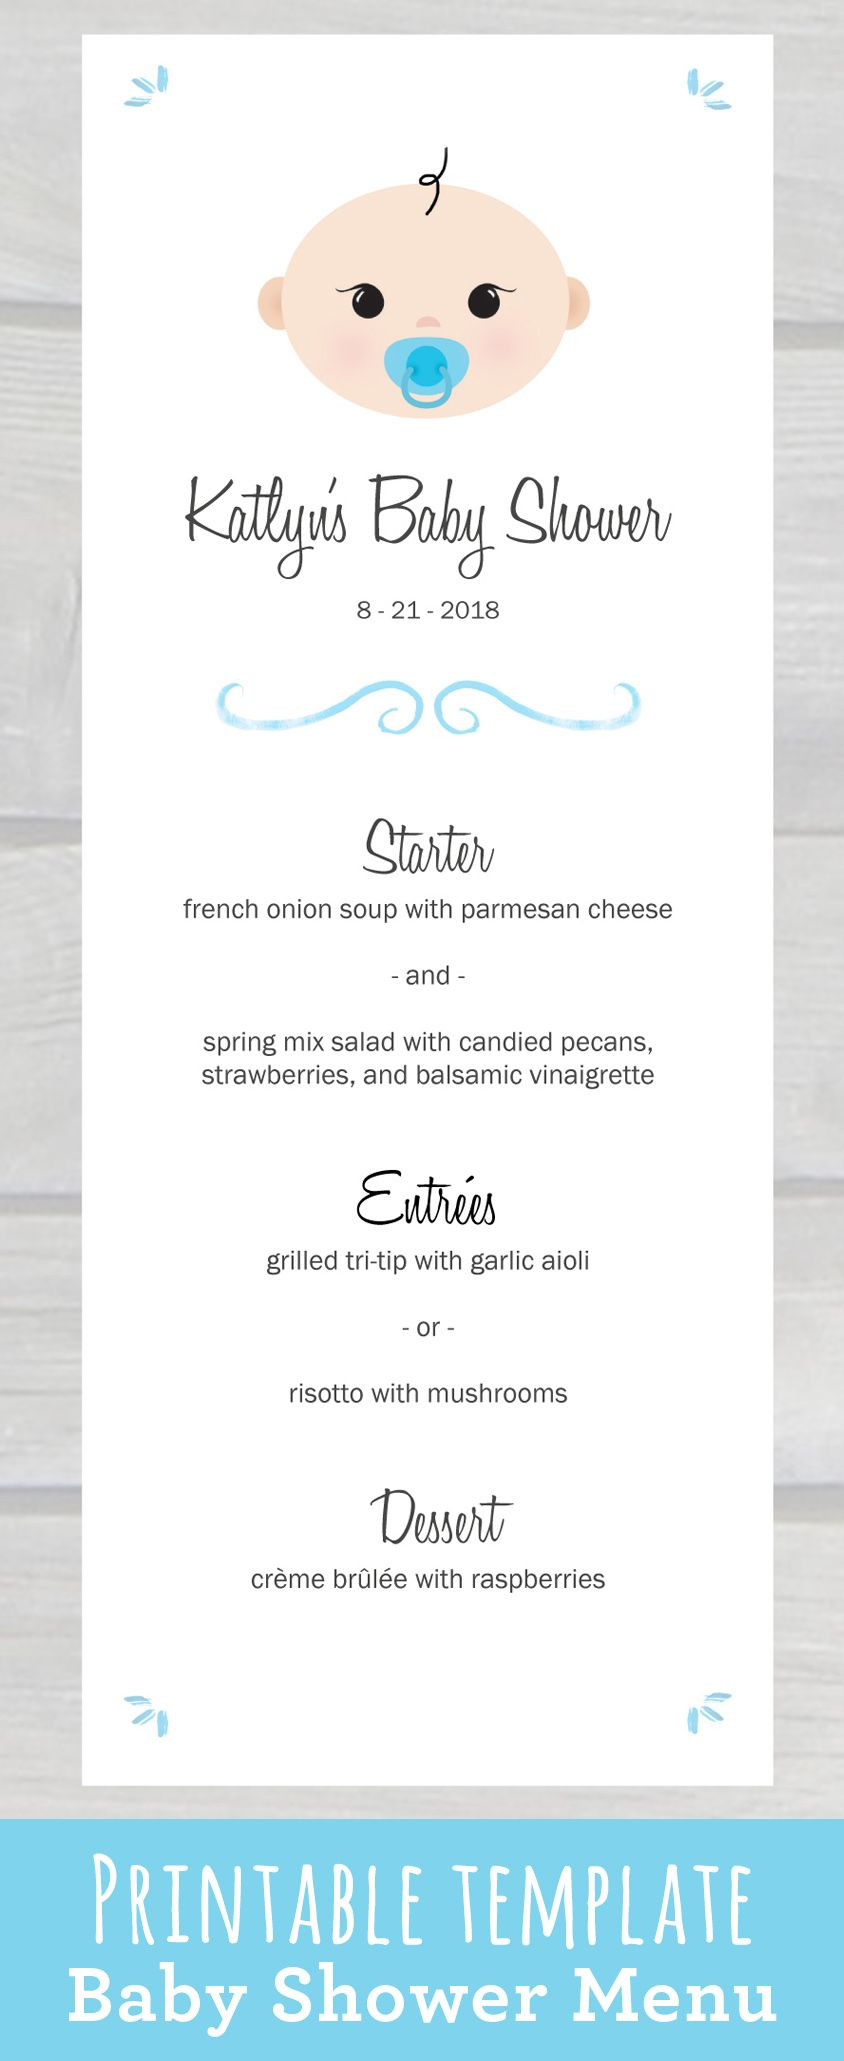 Use this cute Baby Shower Menu Template PDF to edit & print